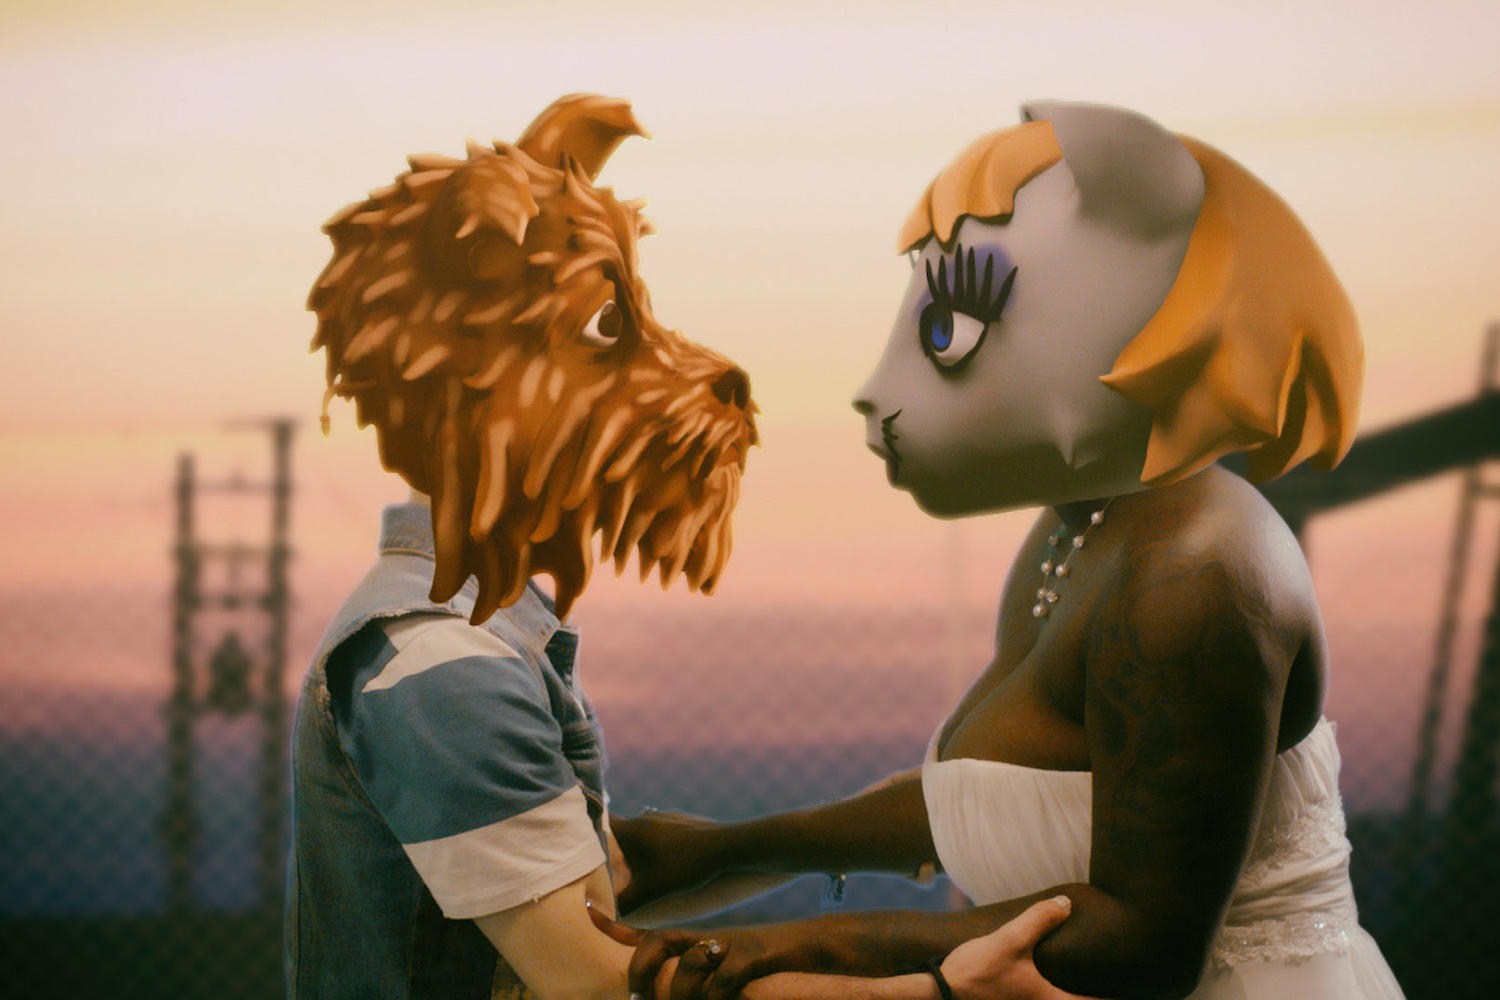 A wedding goes awry in Arcade Fire's bizarre new 'Chemistry' video